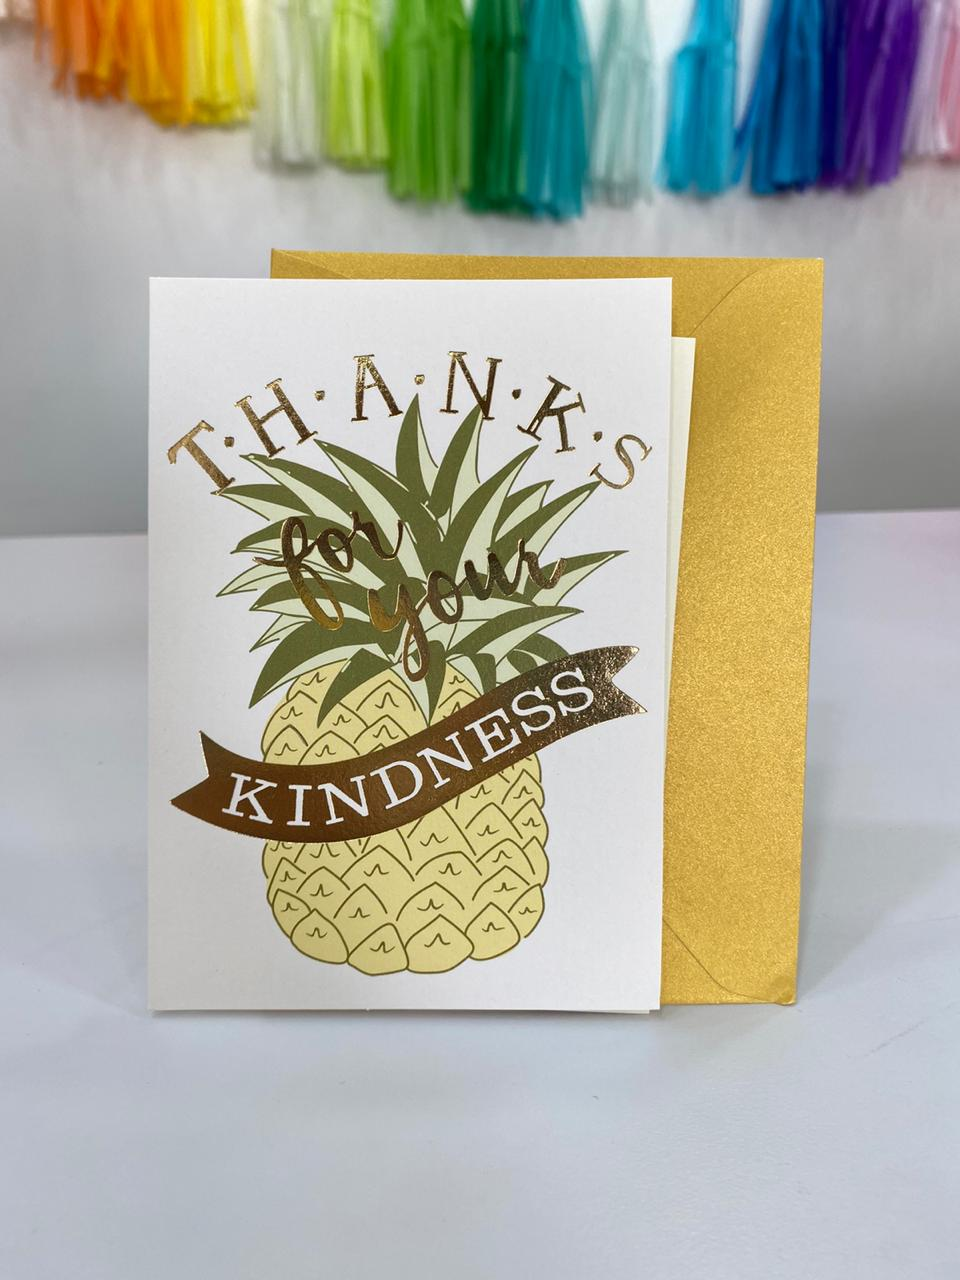 Tarjeta - Piña Thank for you kindness(1 pieza)